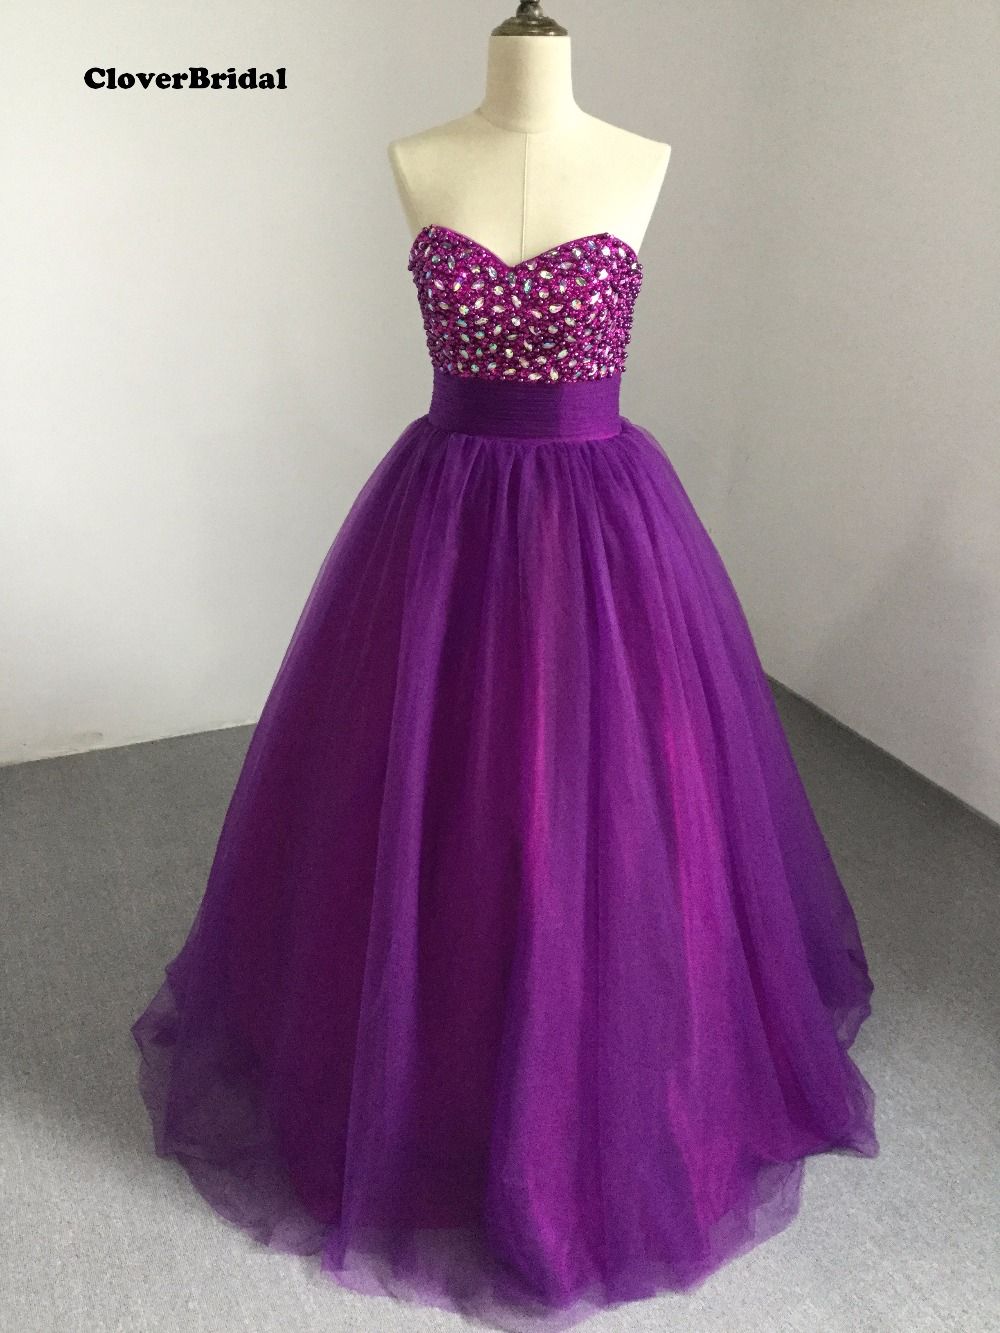 Lovely layers soft tulle pearls beading stones embellished quinceanera dresses pink vestidos de 15 anos DHL free shipping